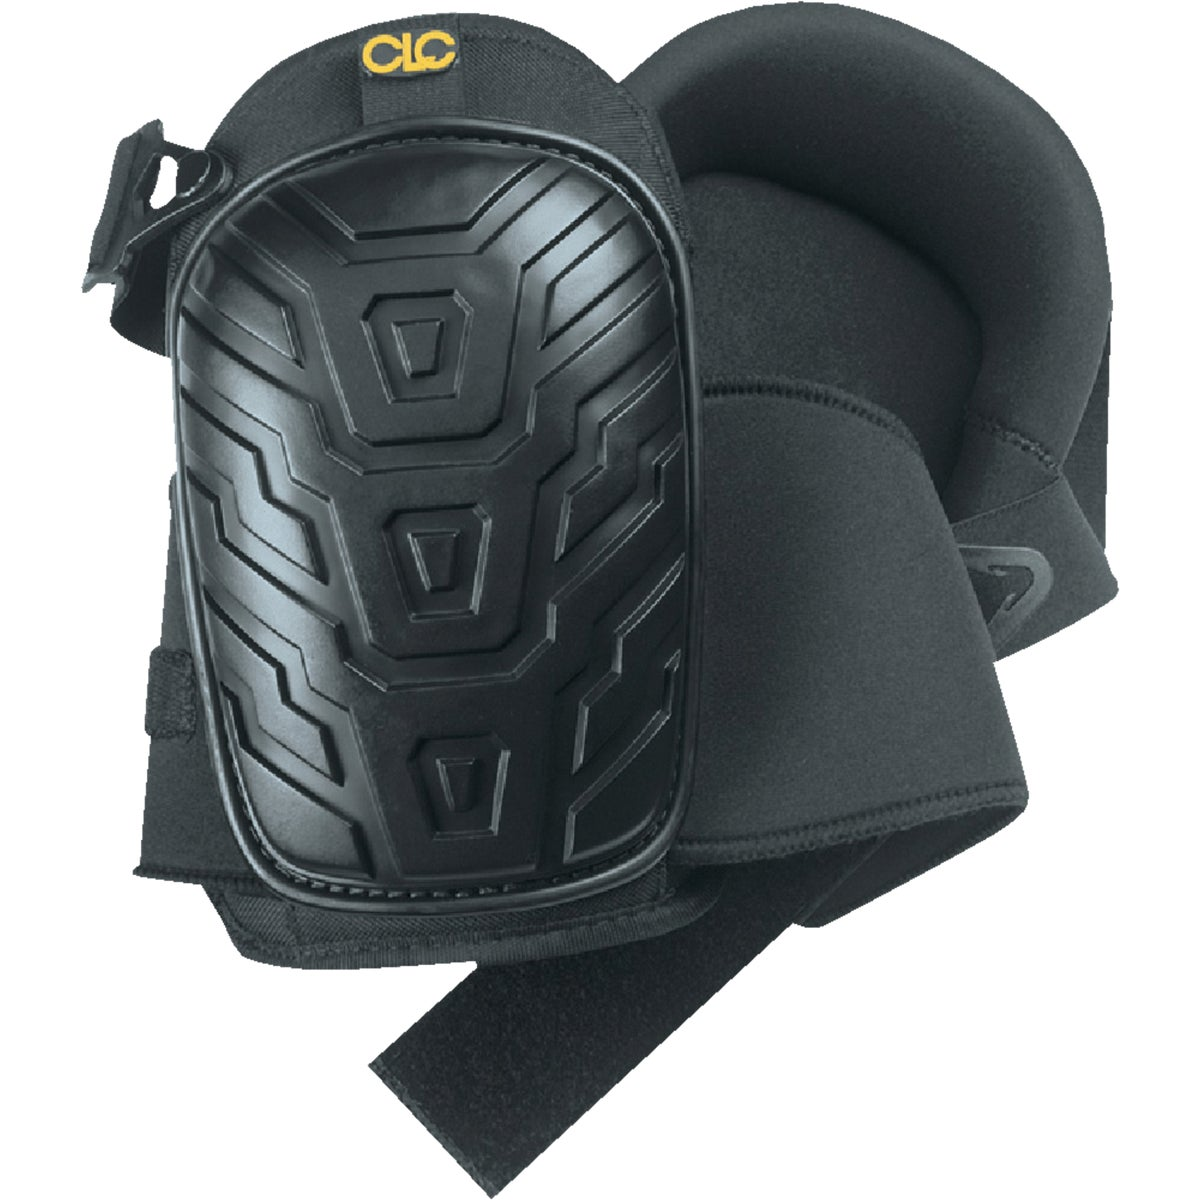 HEAVY DUTY KNEE PADS